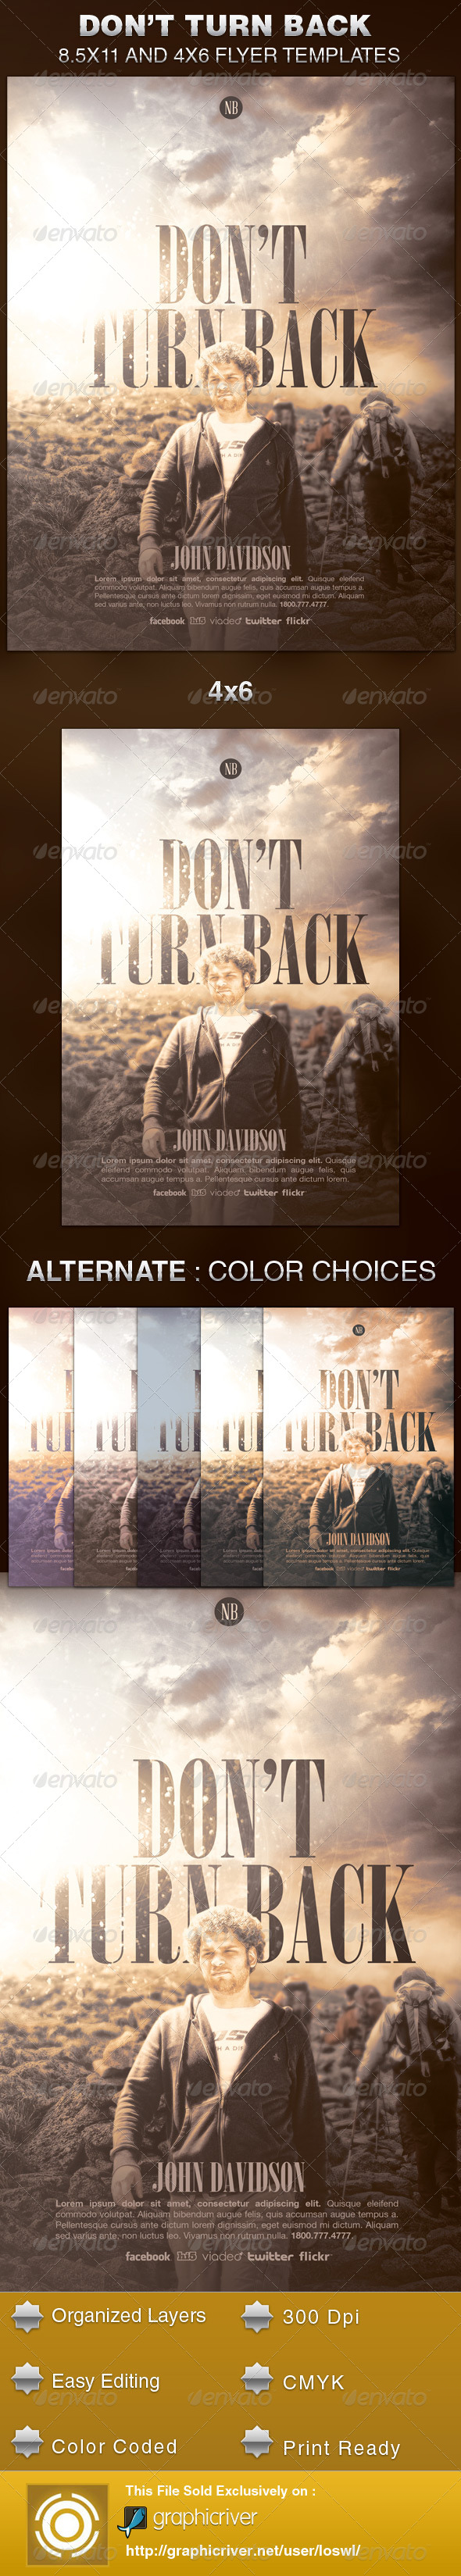 GraphicRiver Don t Turn Back Church Flyer Template 5898240